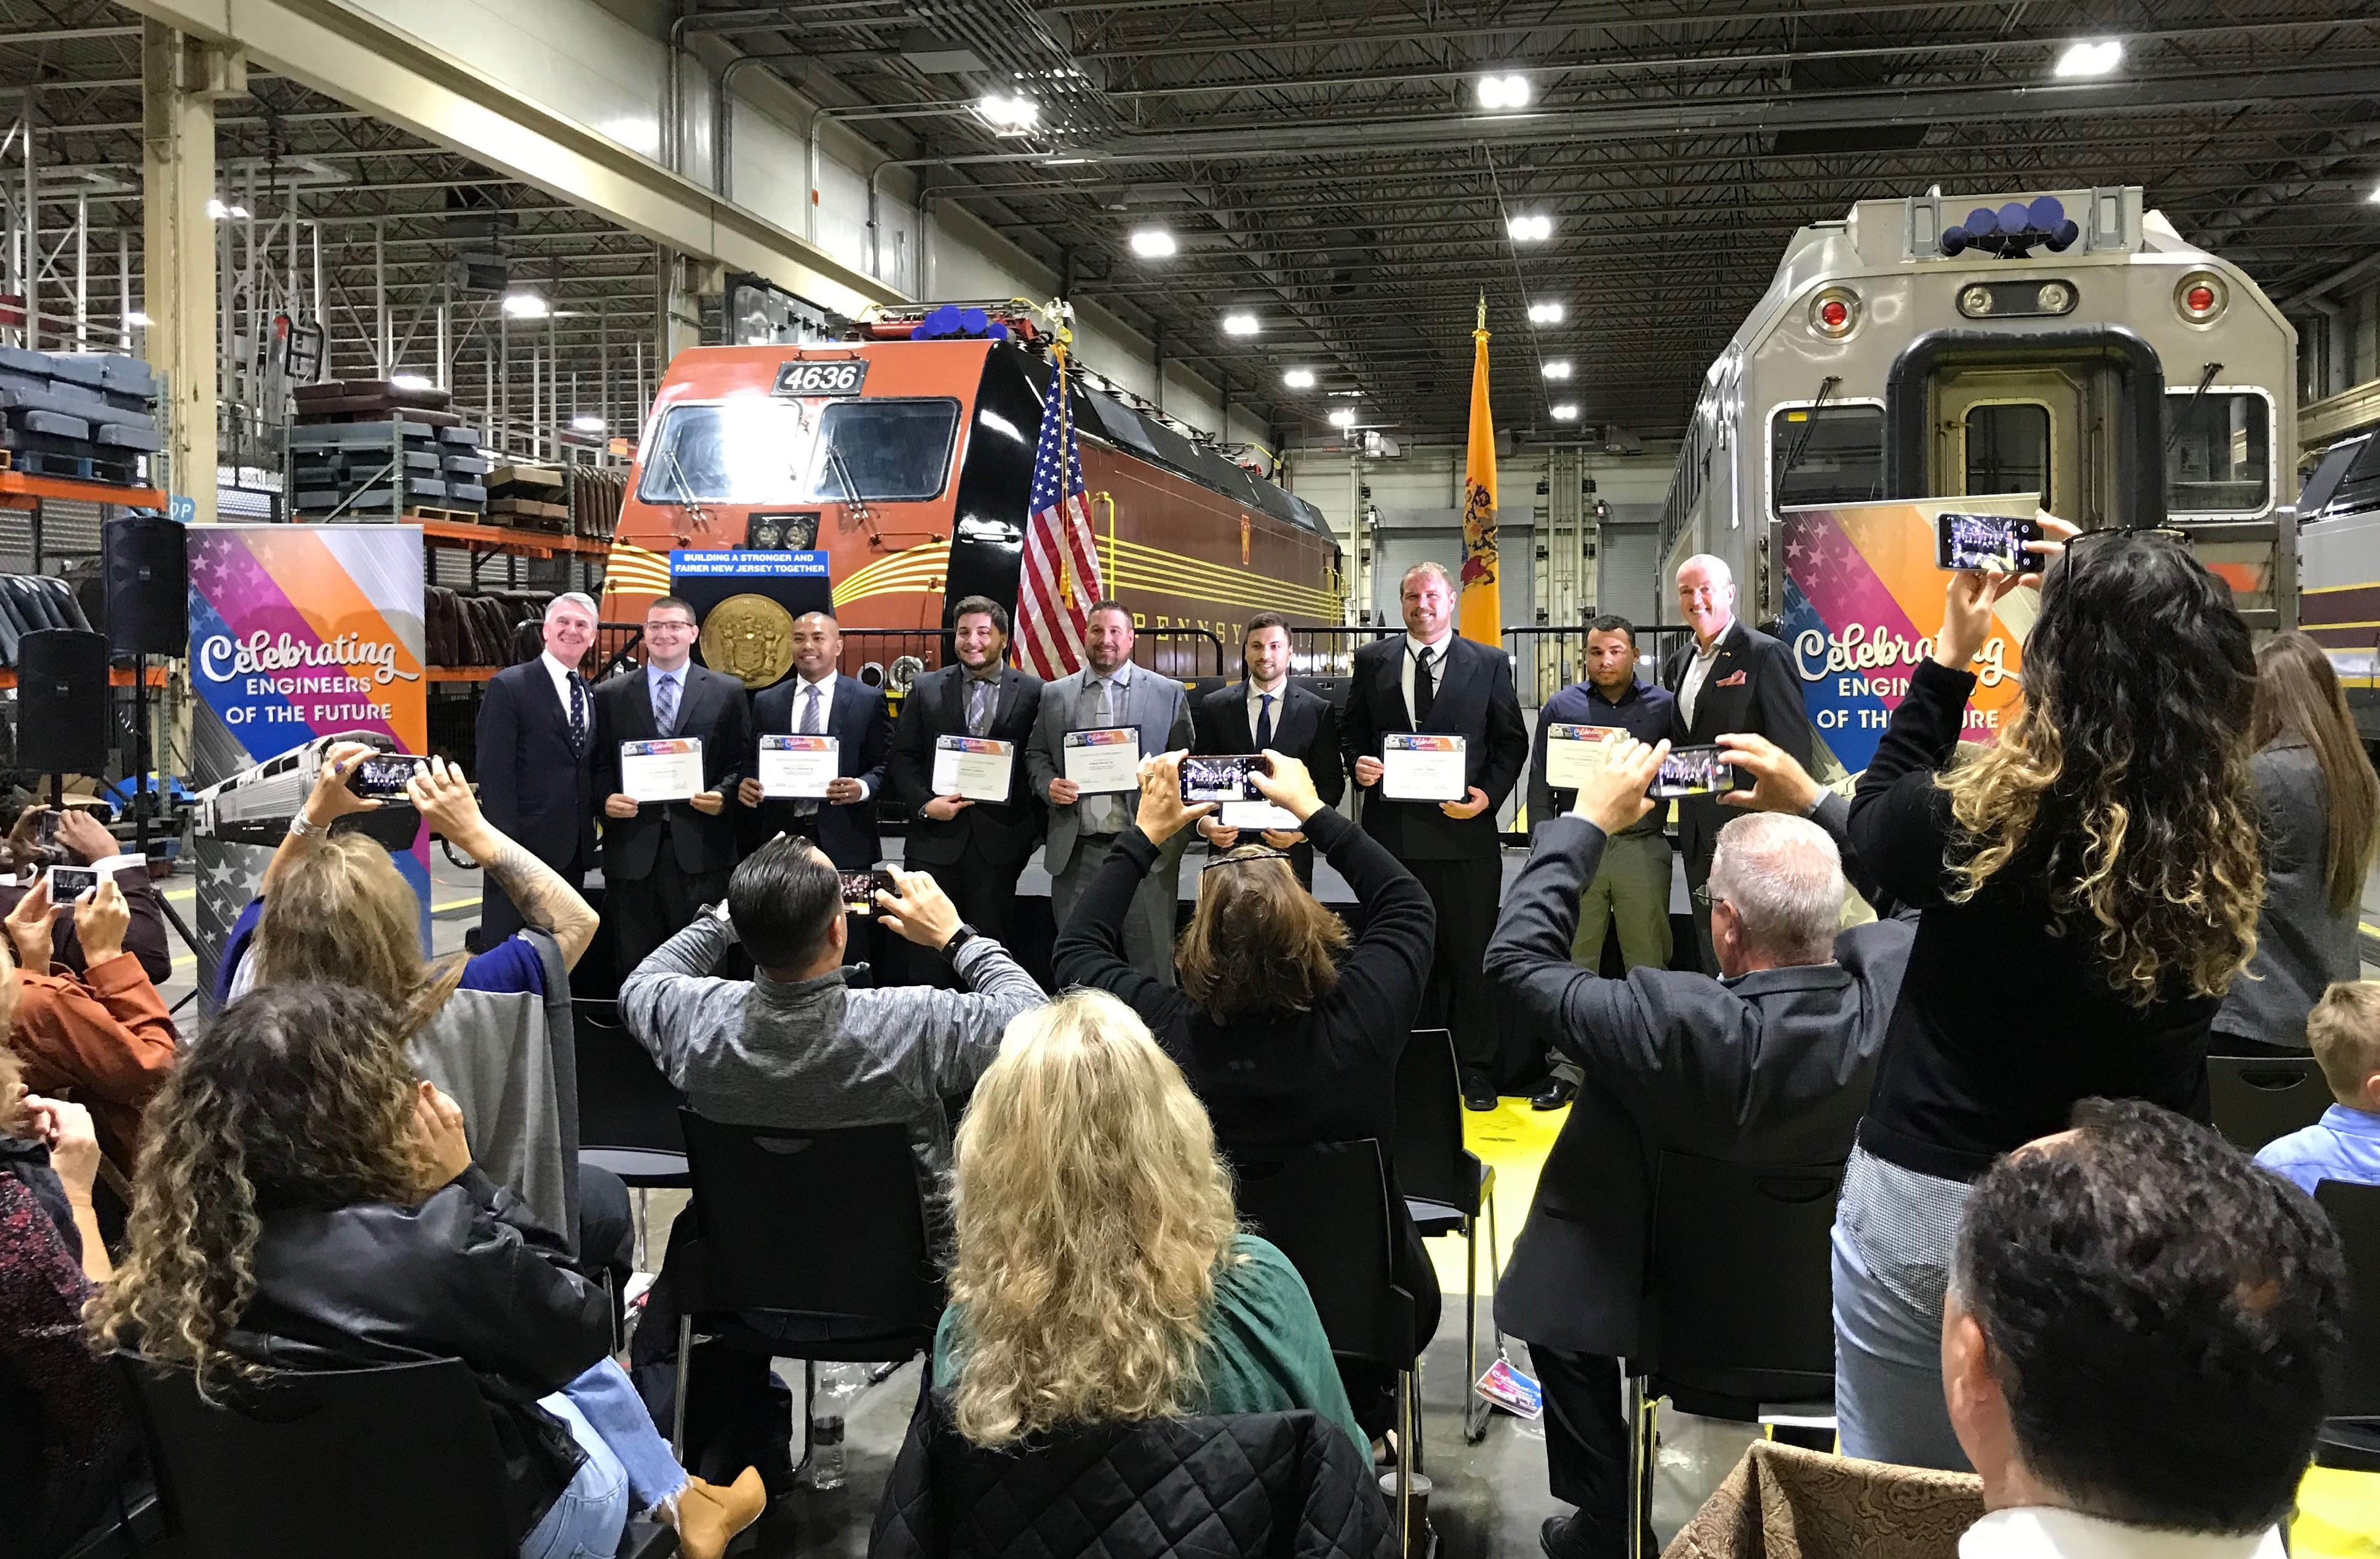 More NJ Transit engineers graduate, but are they enough to run all the trains?